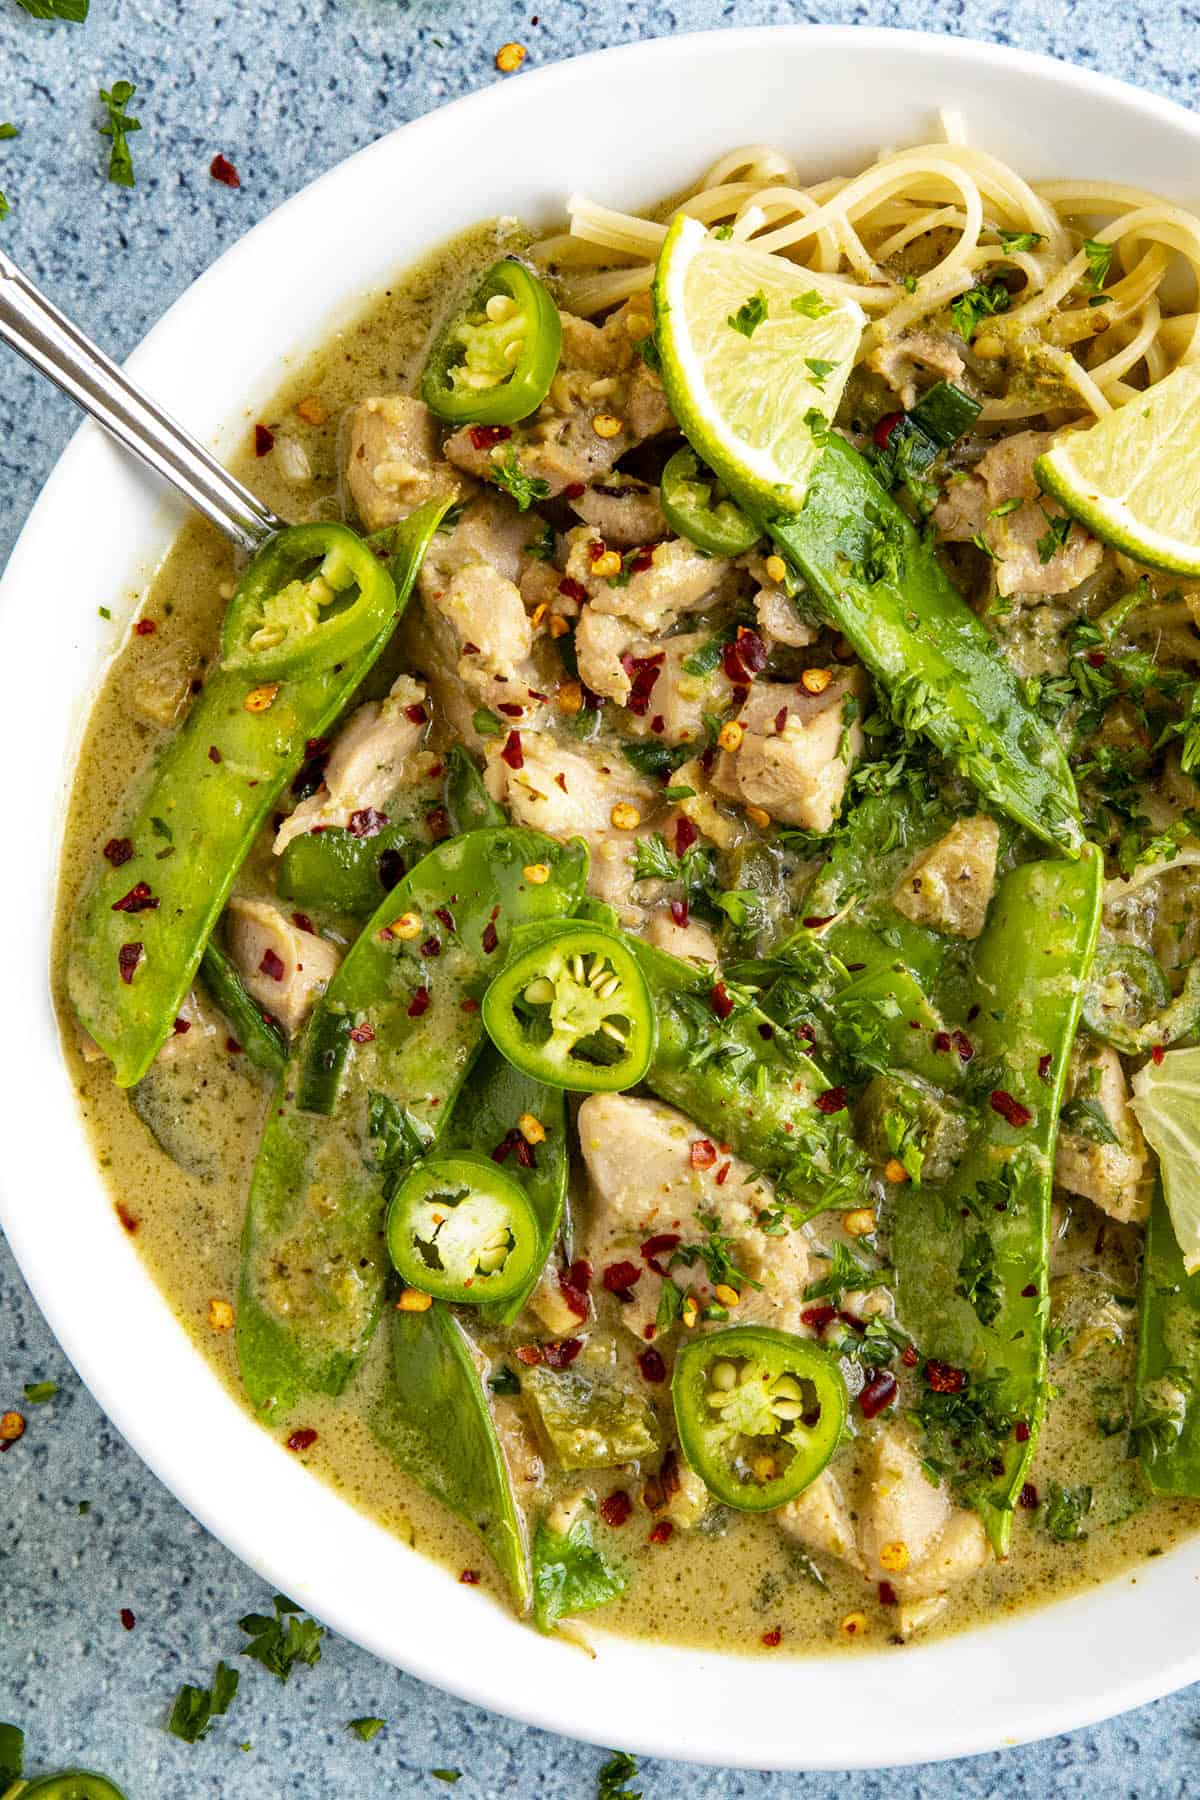 Spicy green curry in a bowl, ready to serve